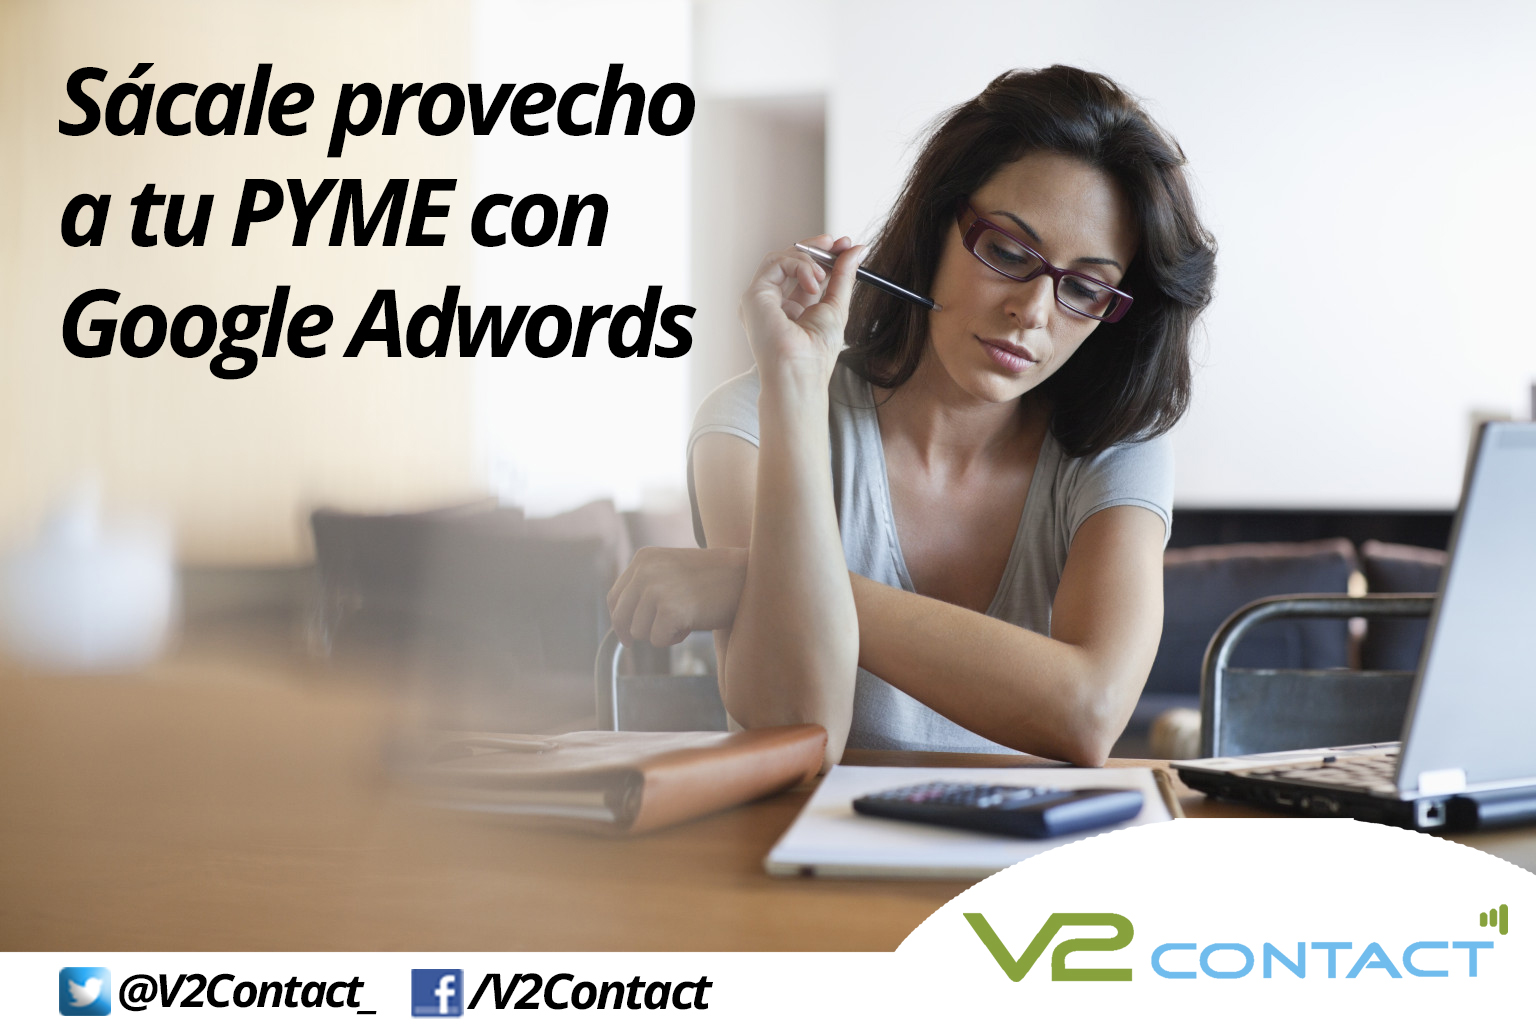 Sácale provecho a tu PYME con Google Adwords